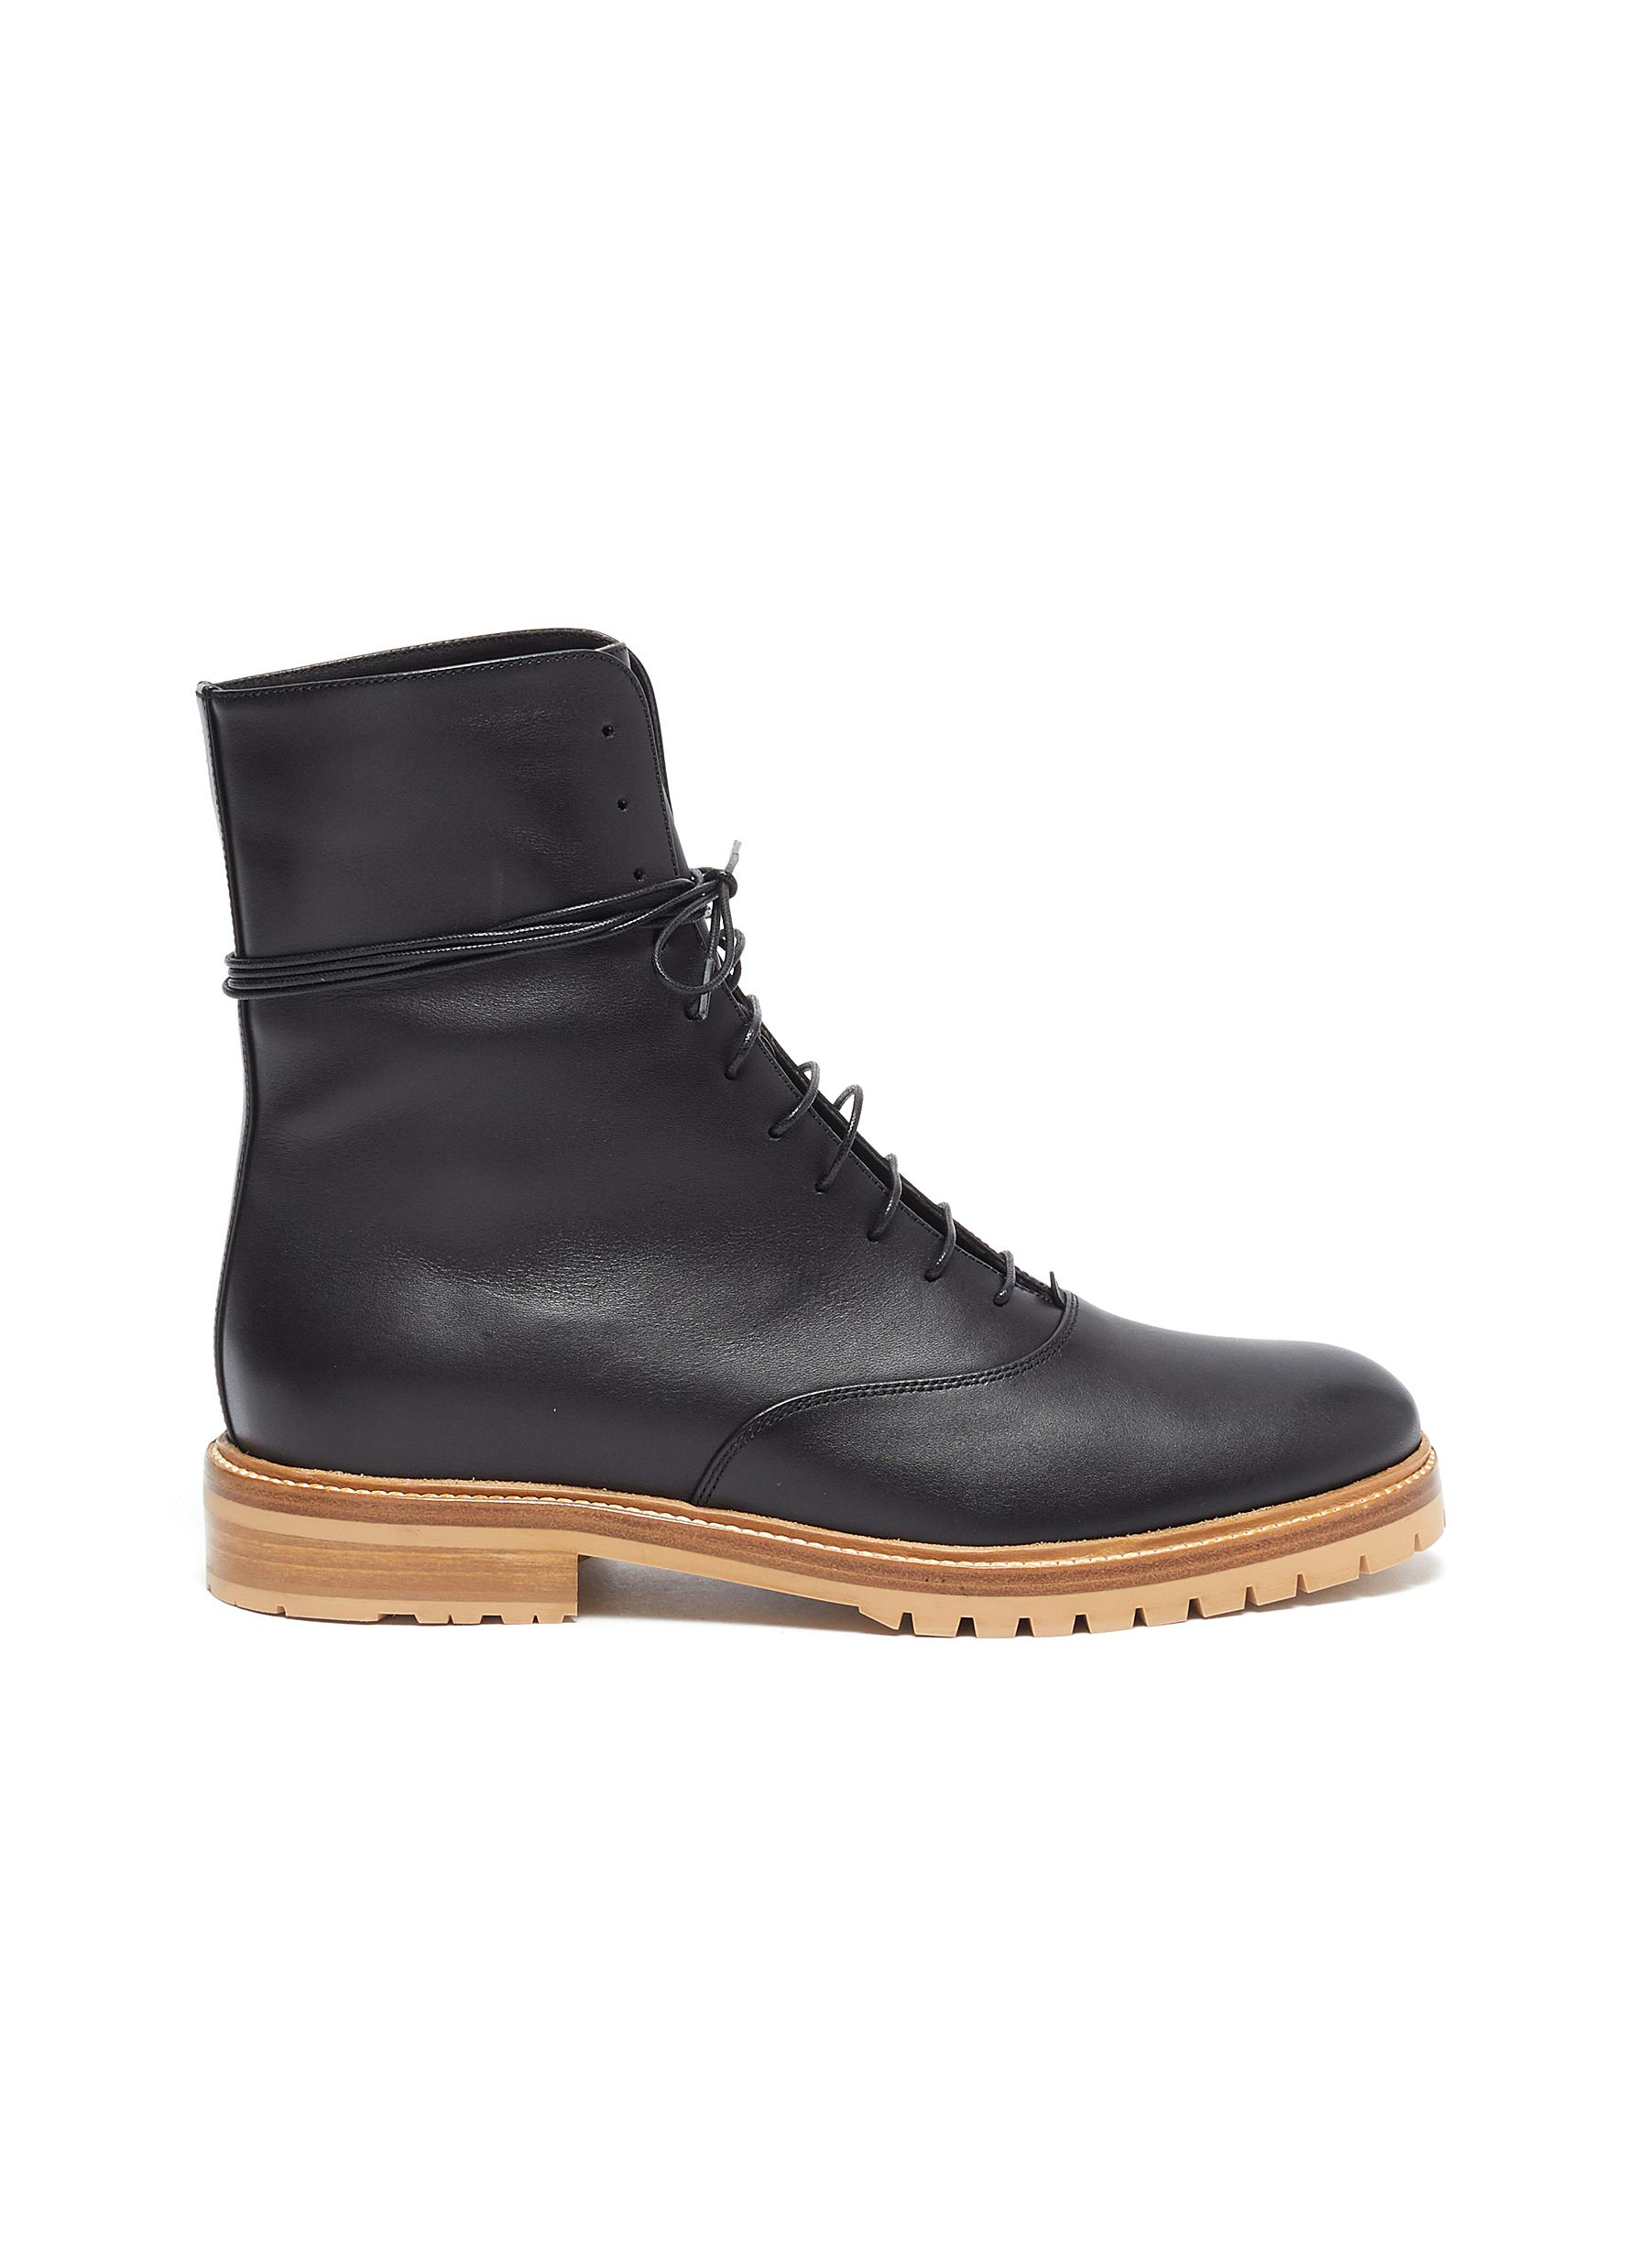 Gabriela Hearst Boots Ruben lace-up leather combat boots